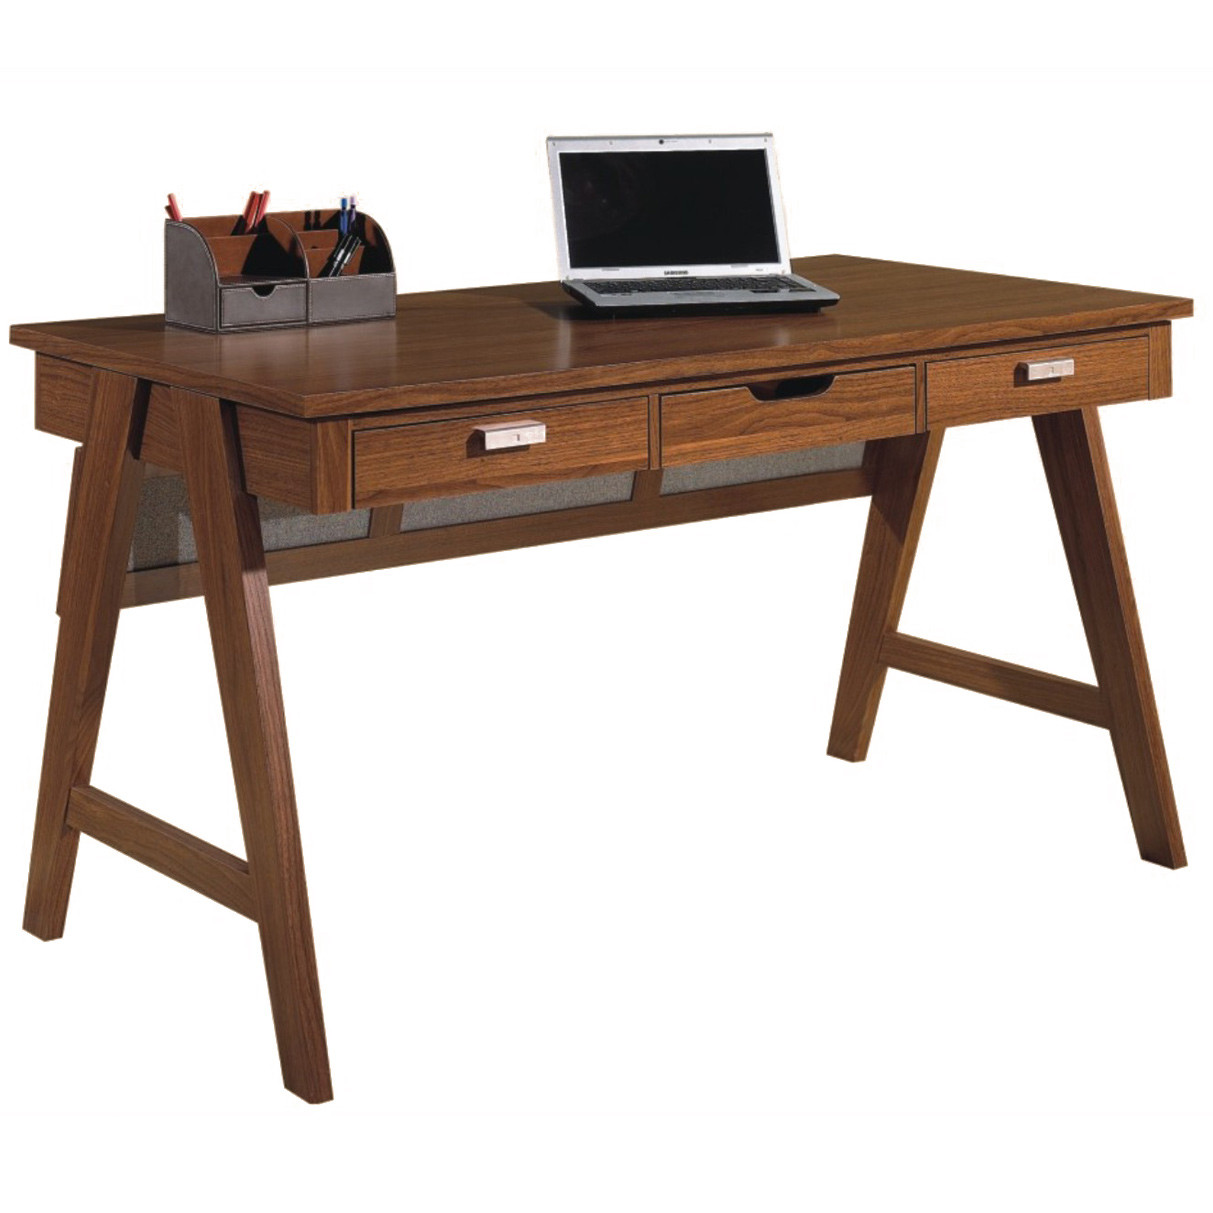 desks home desc fice desk furniture office co idai baskan